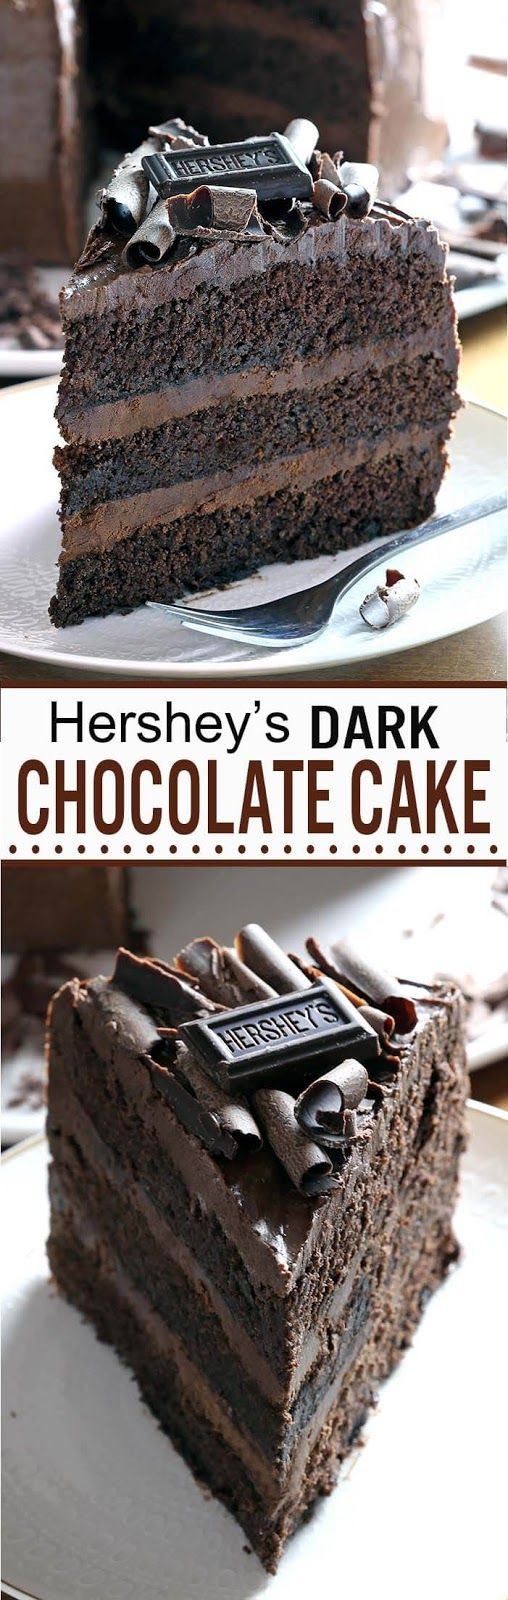 Dark Chocolate Cake #recipes #allrecipes #food #easyrecipe #healthy